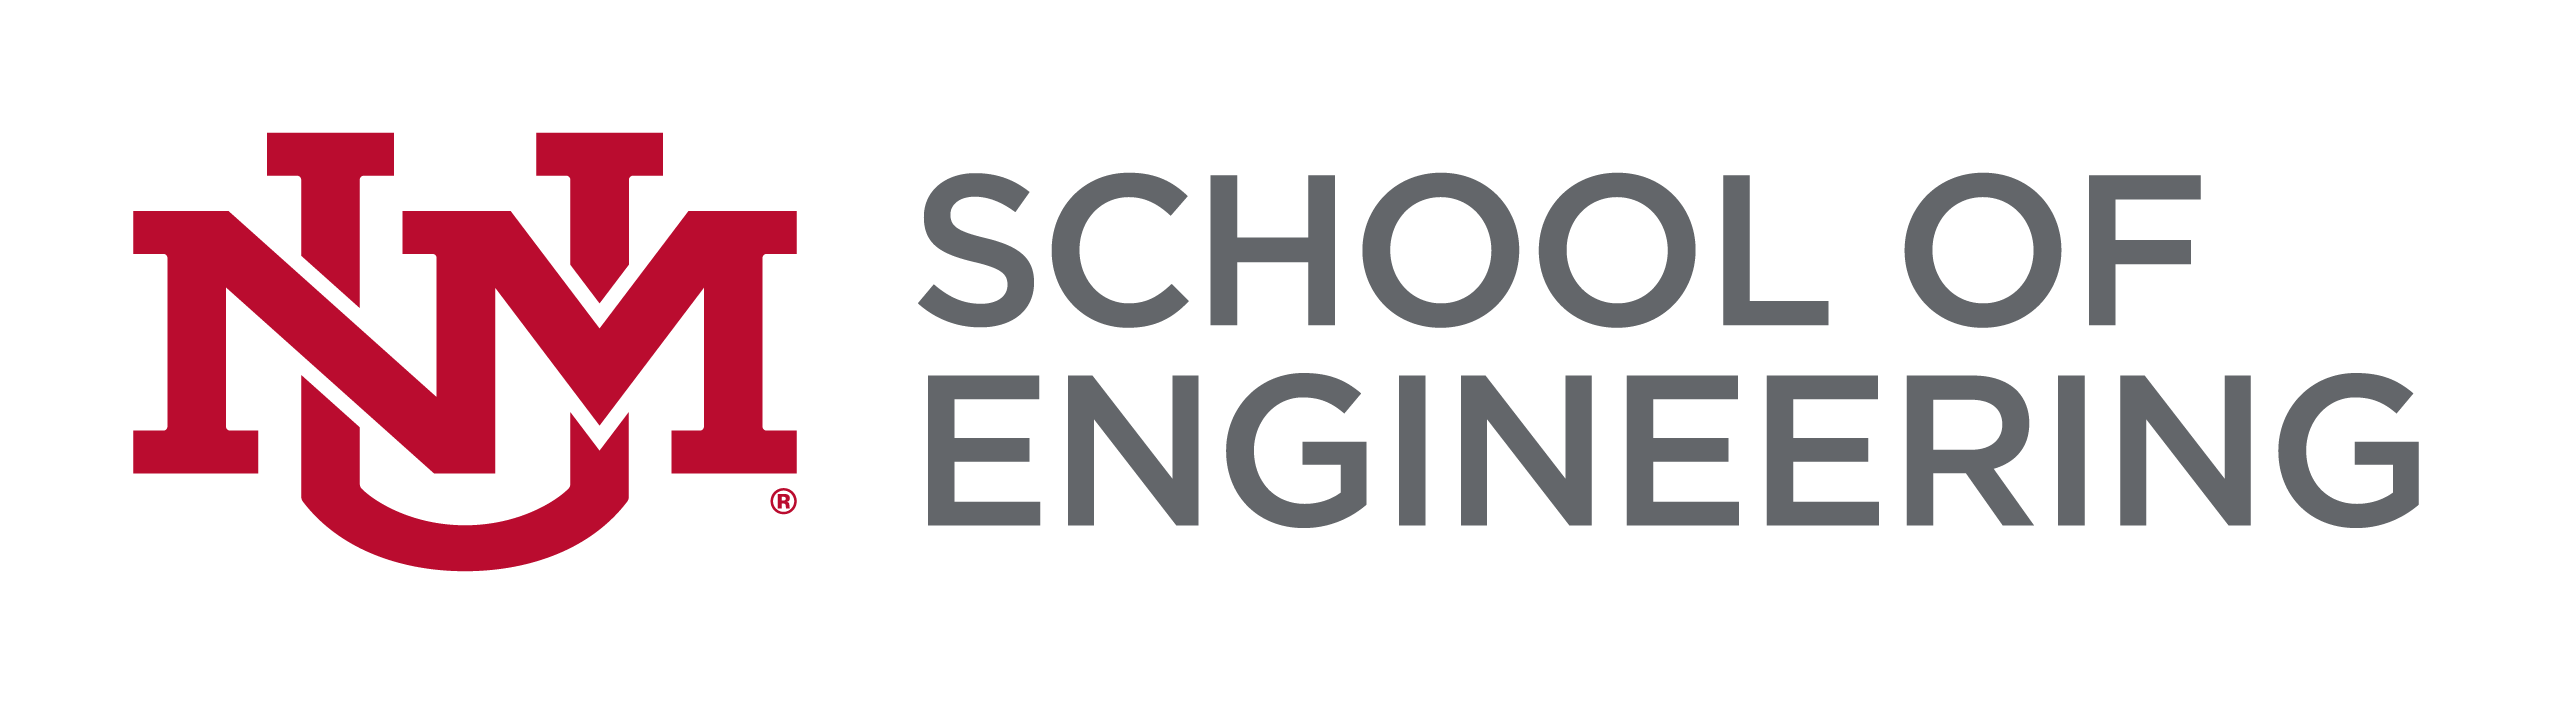 University of new mexico logo png. School engineering the soe